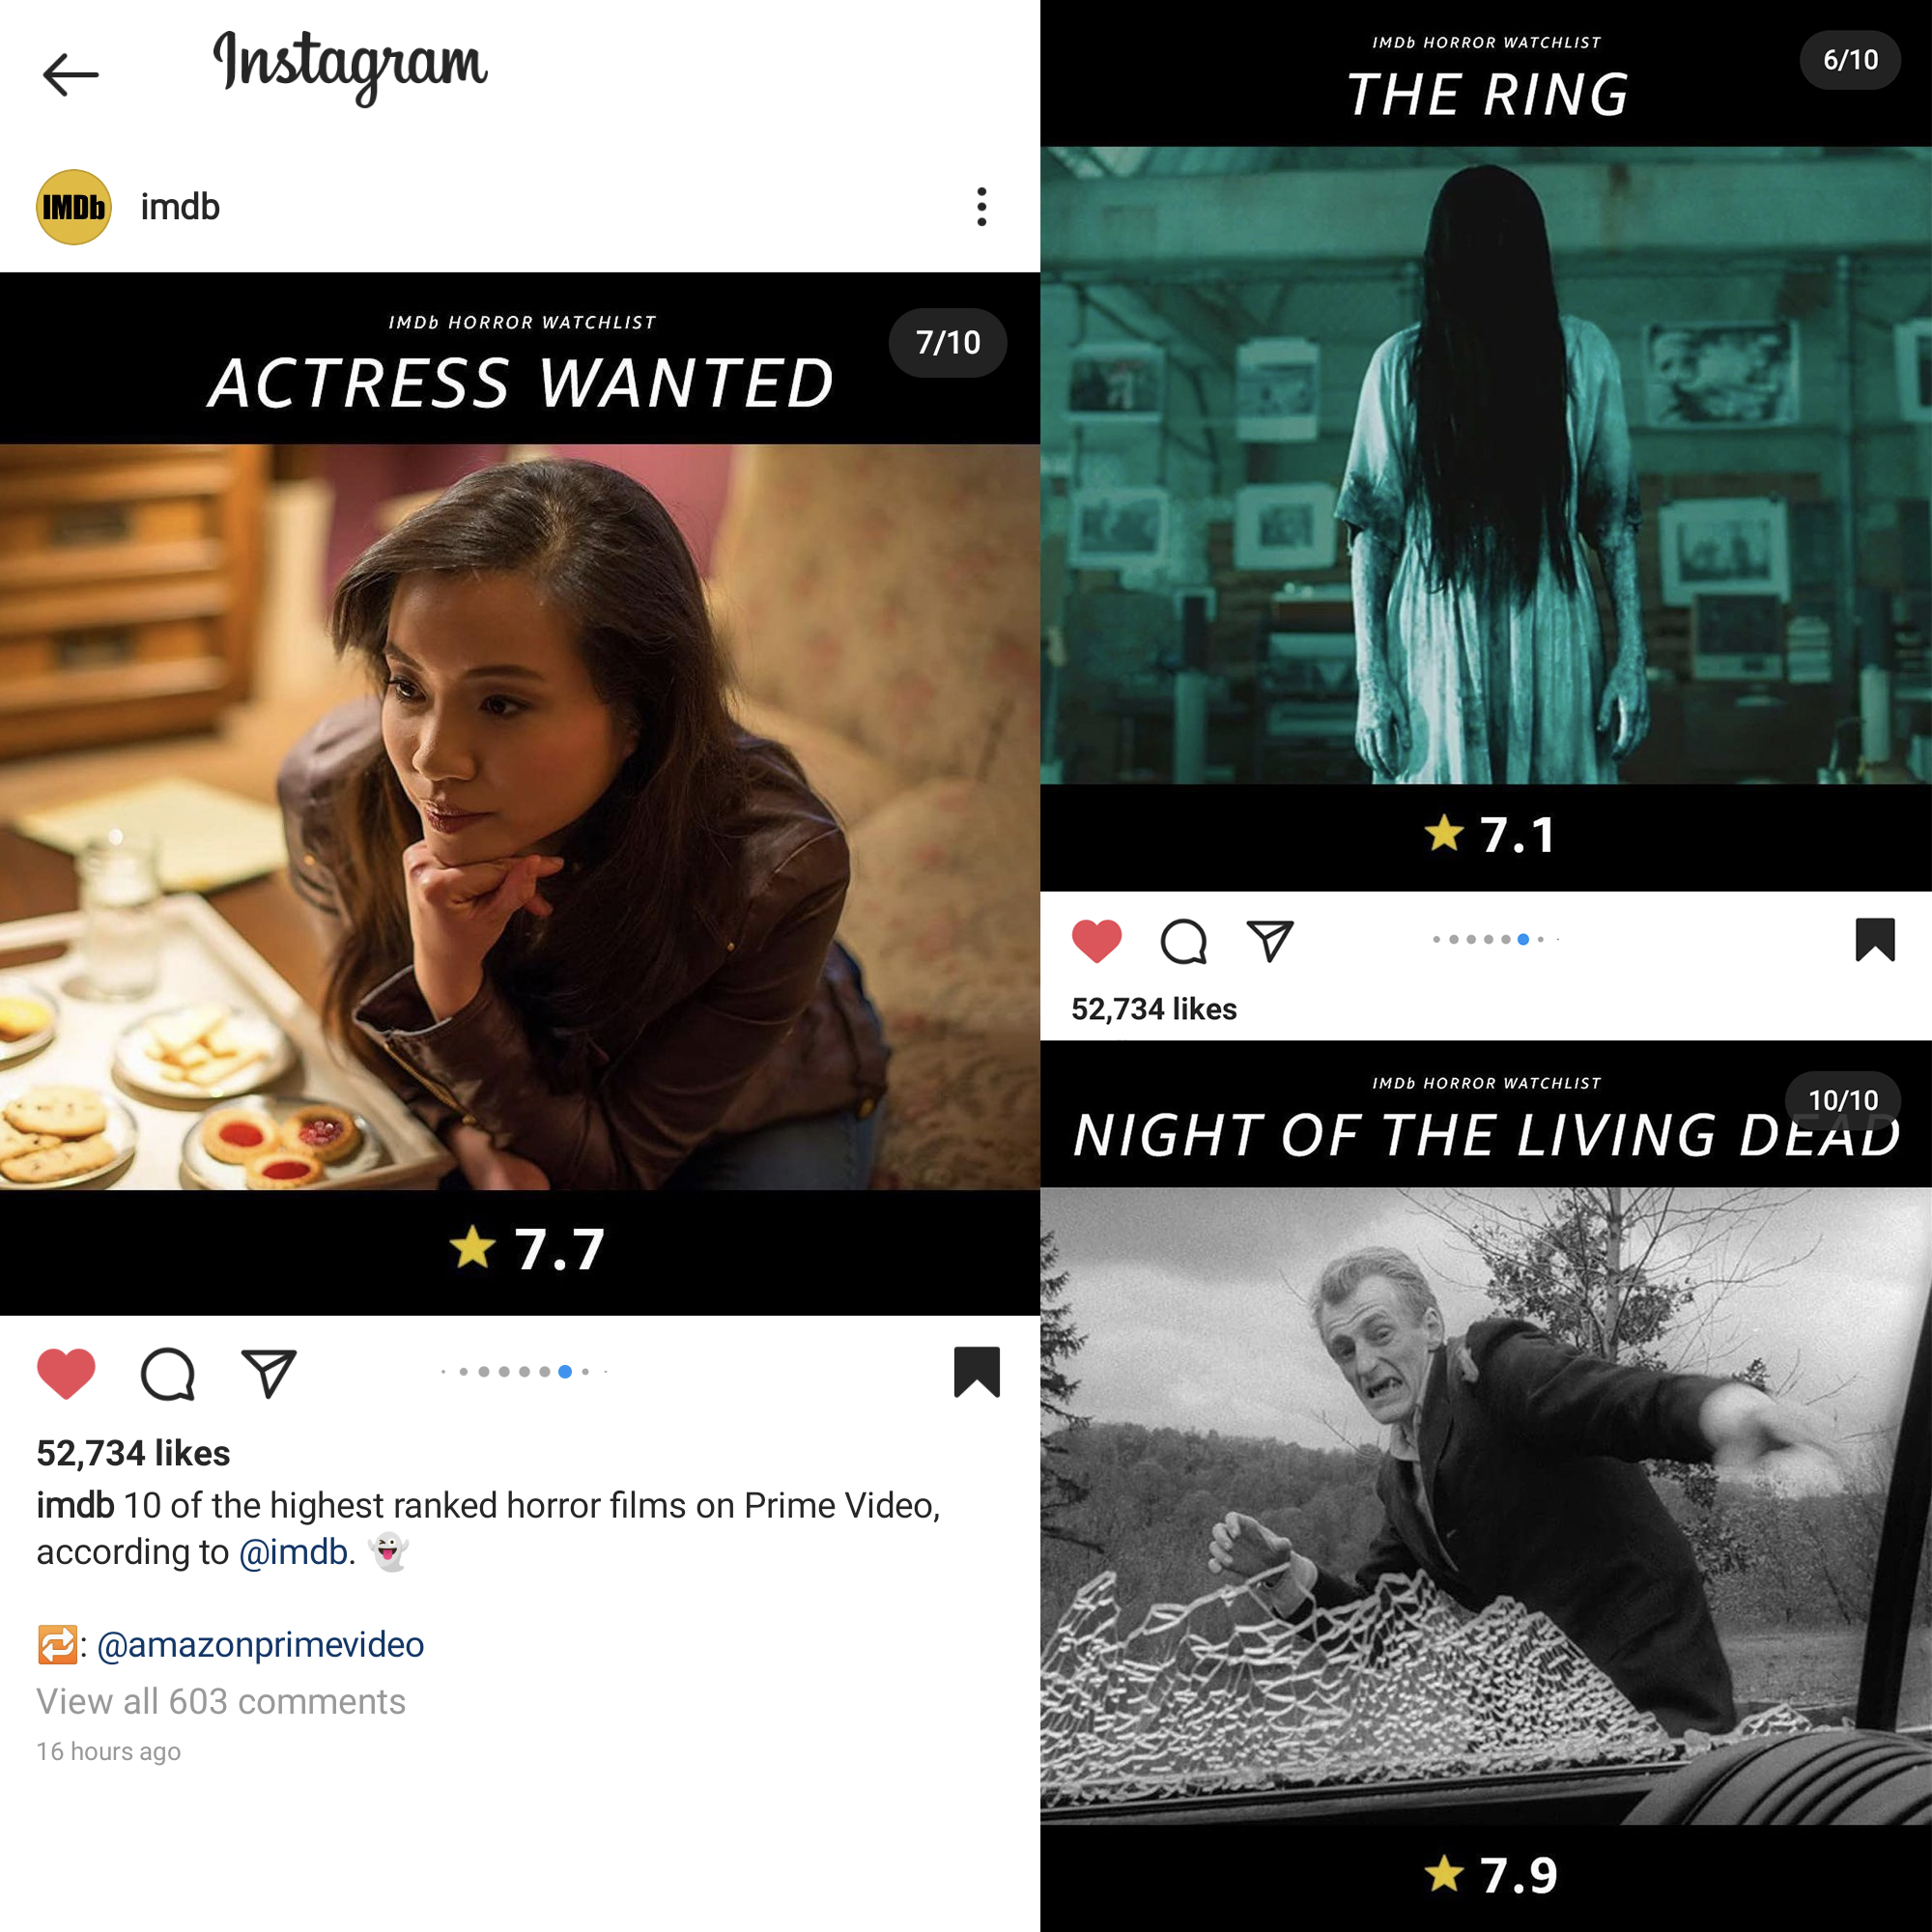 Actress Wanted made the 10 of the highest ranked horror films on Prime Video (according to @imdb) list